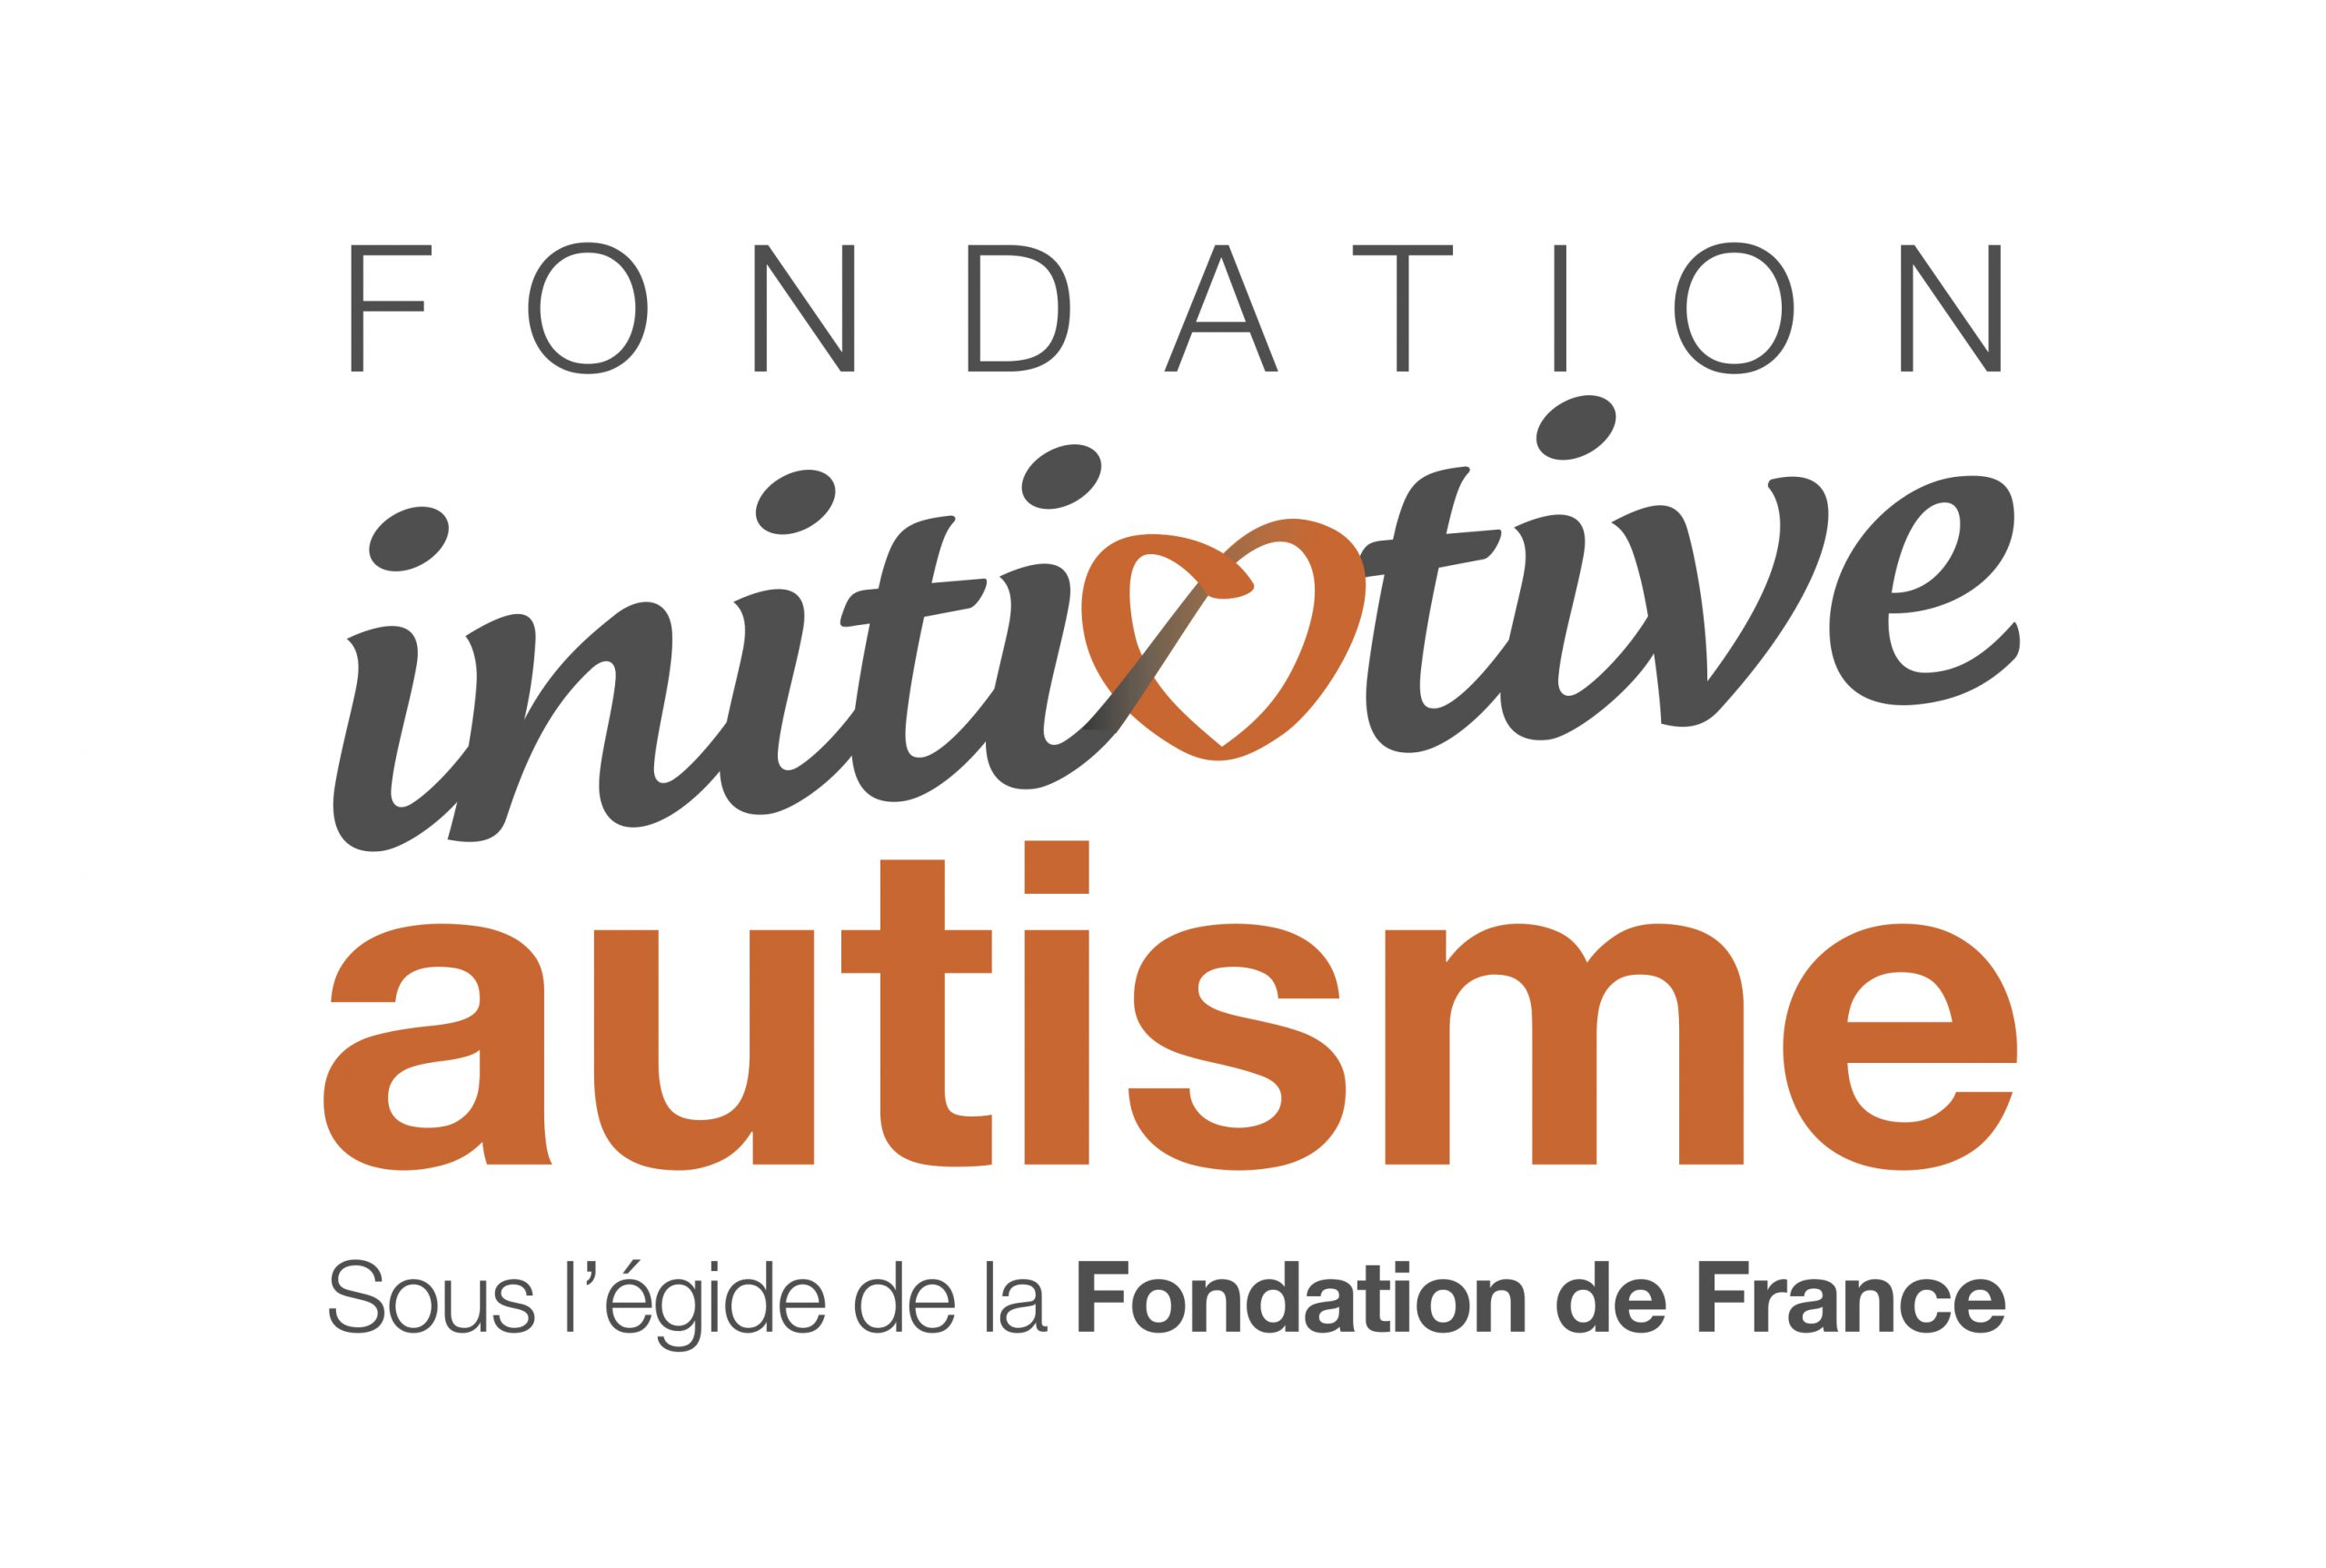 logo fondation initiative autisme